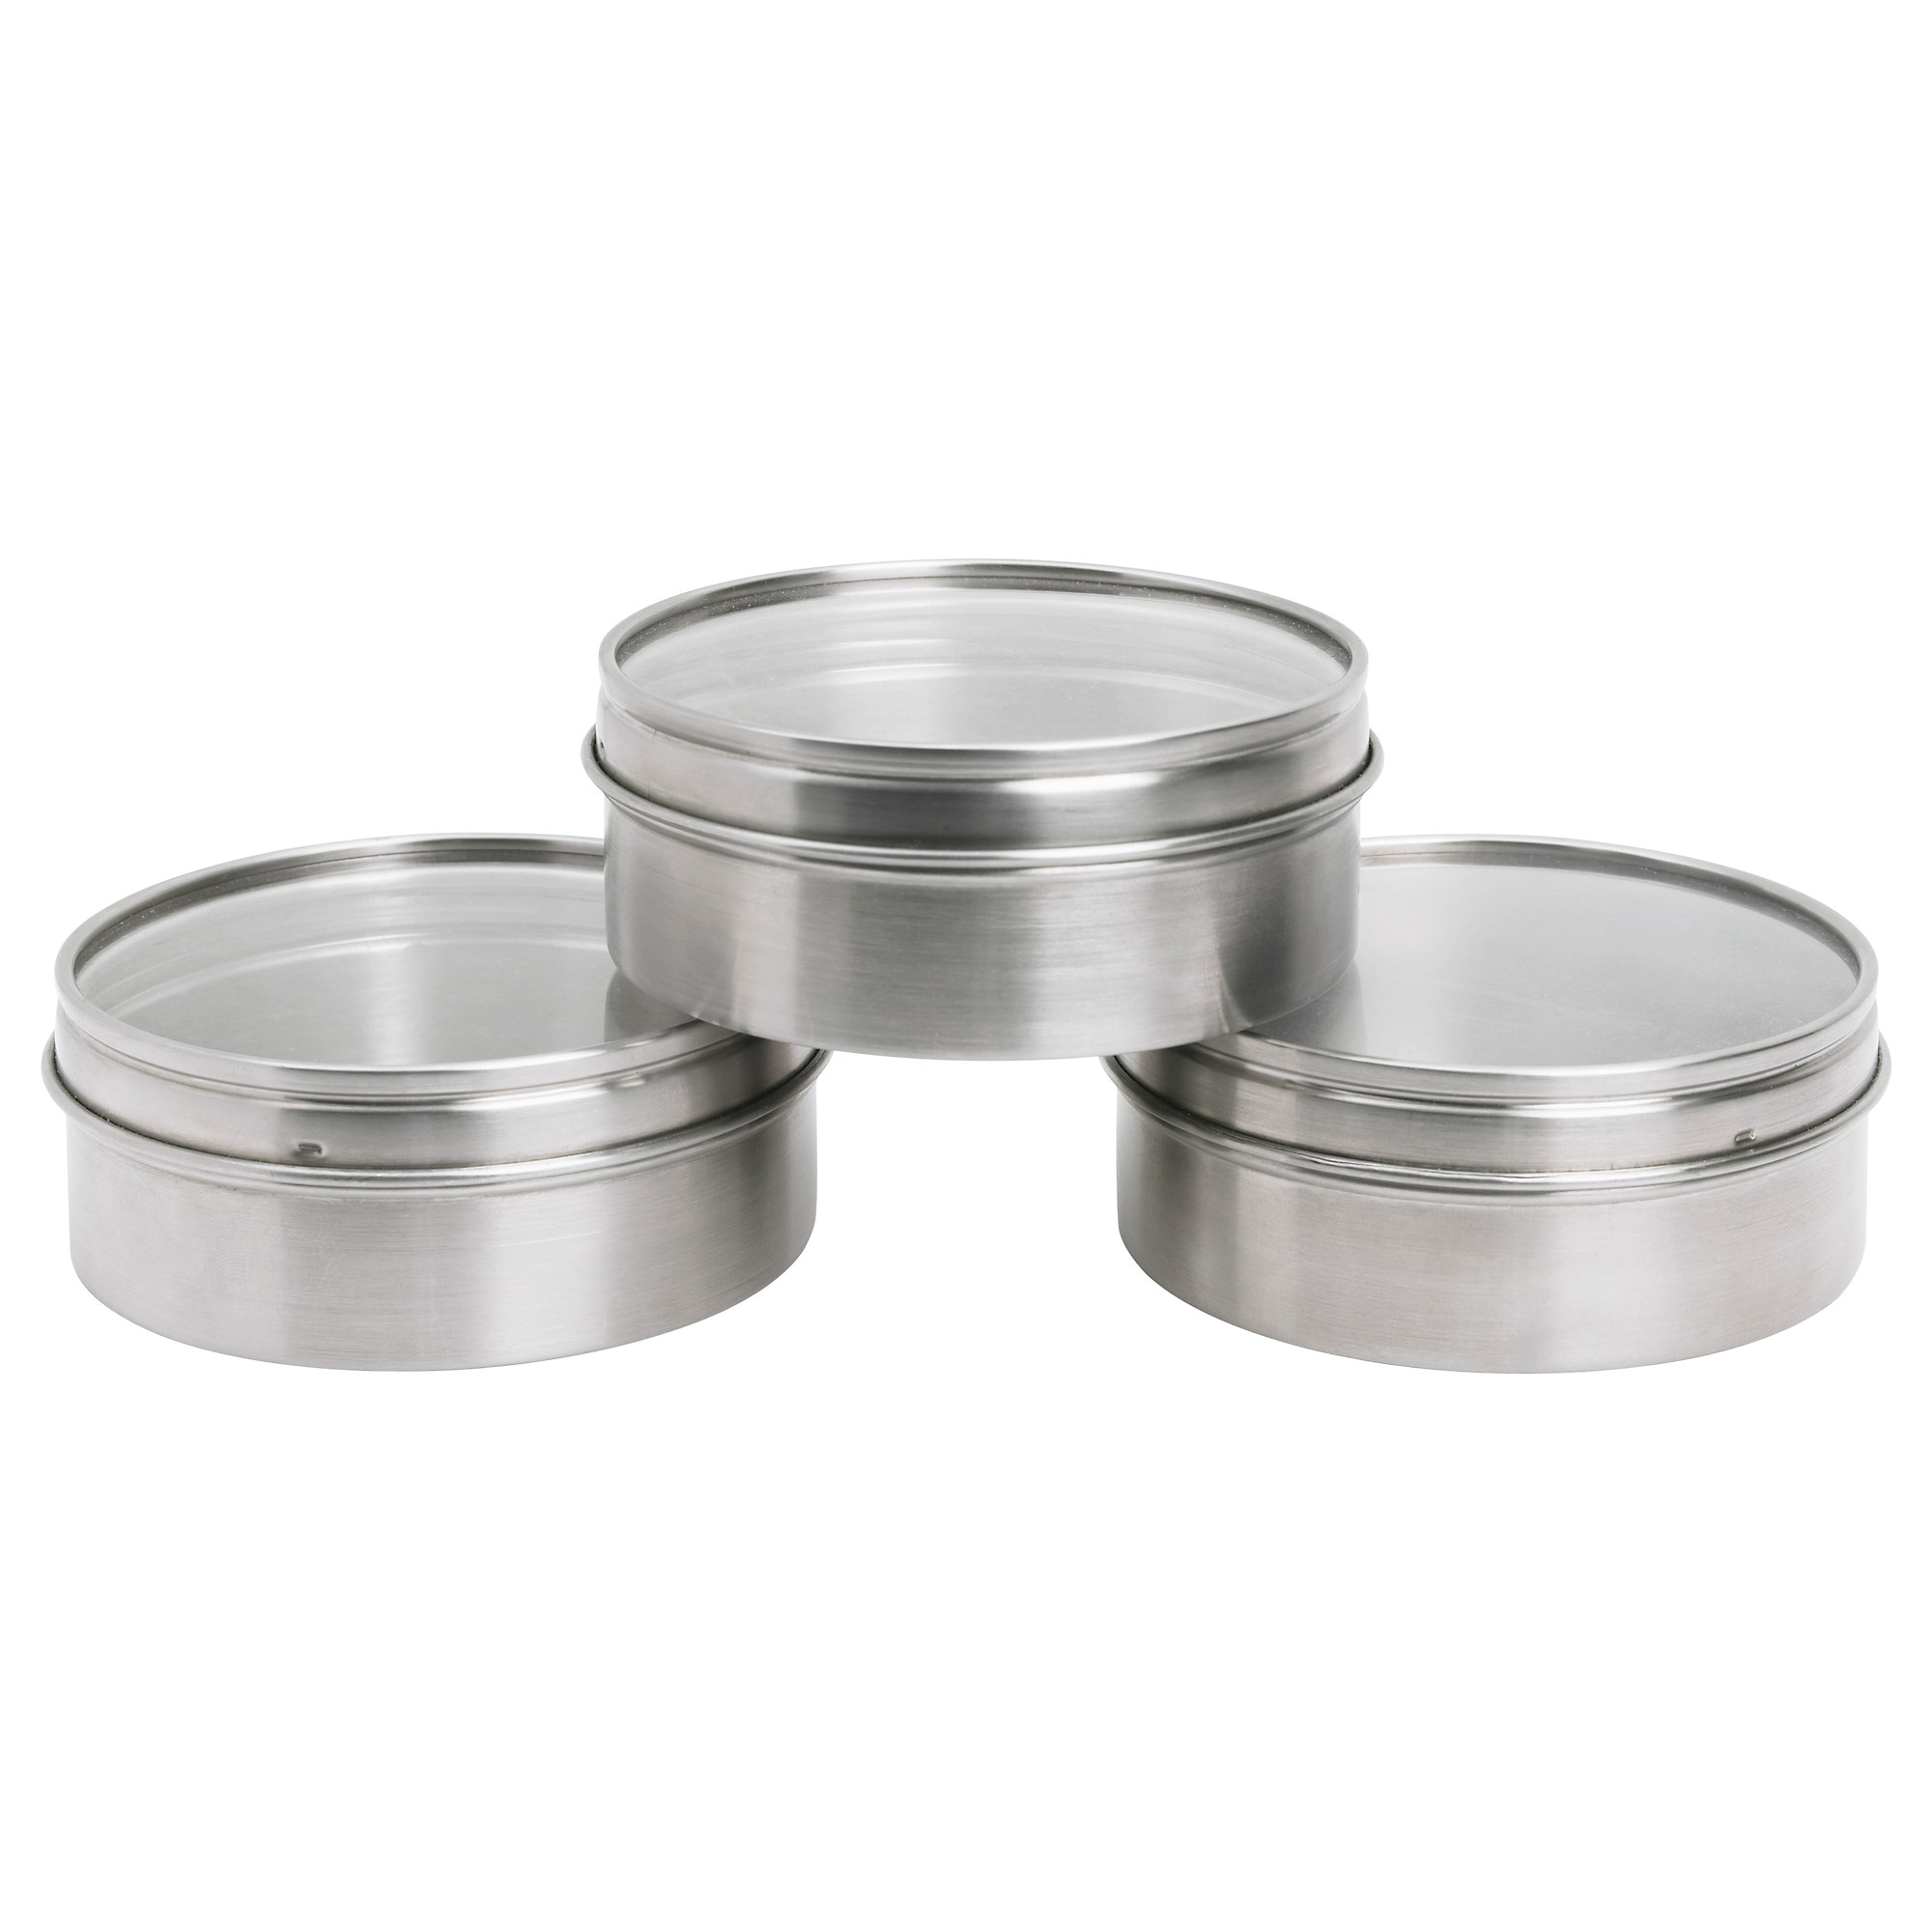 Stainless steel storage containers for kitchen - Stainless Steel Storage Containers For Kitchen 44